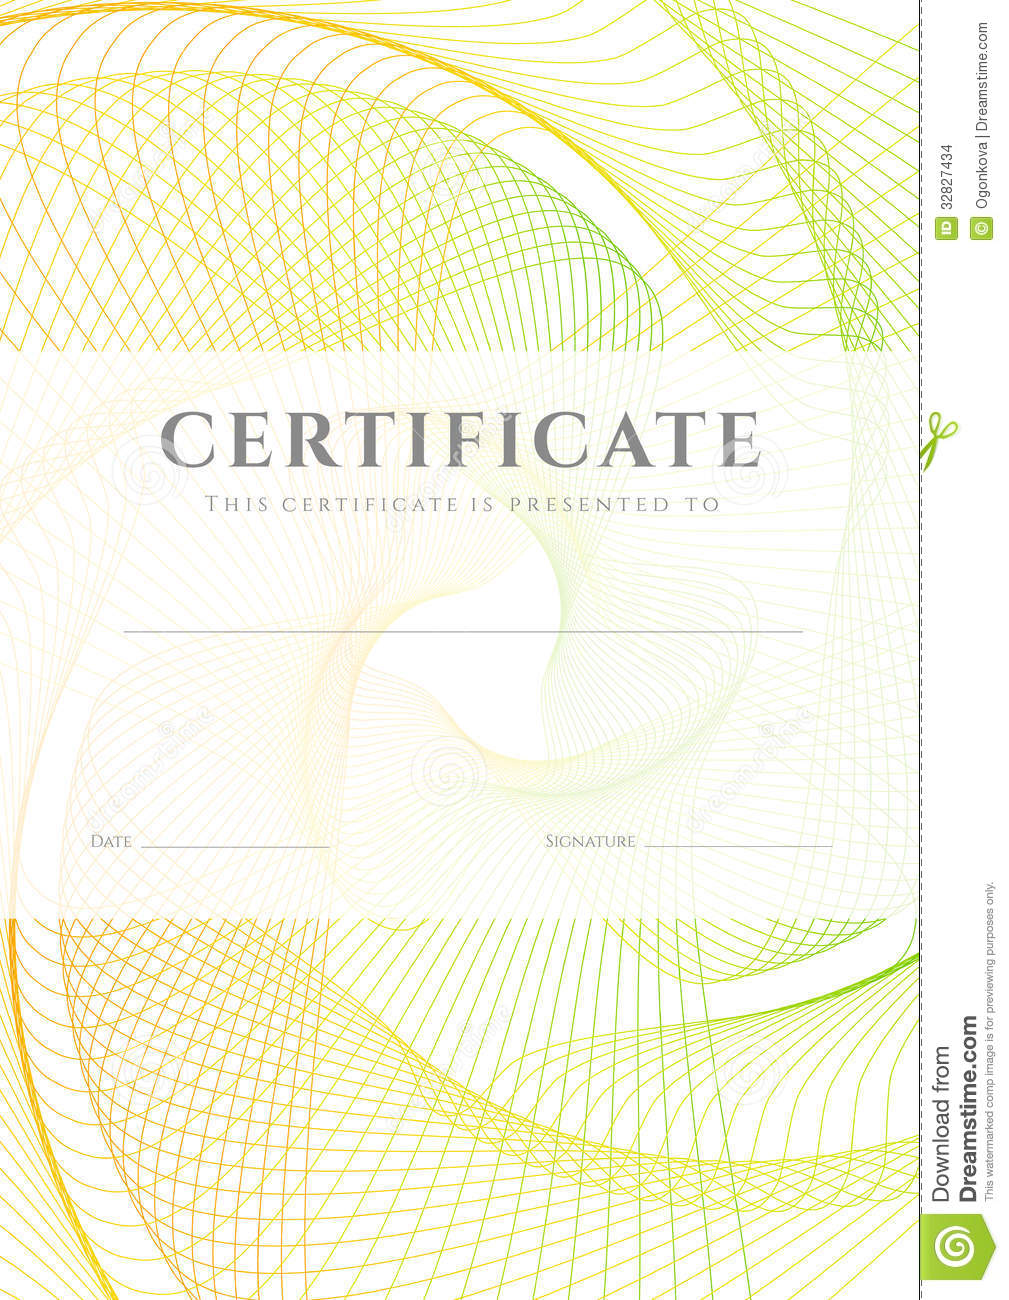 certificate template music cover letter templates certificate template music gift certificate template customizable certificate diploma of completion design template background